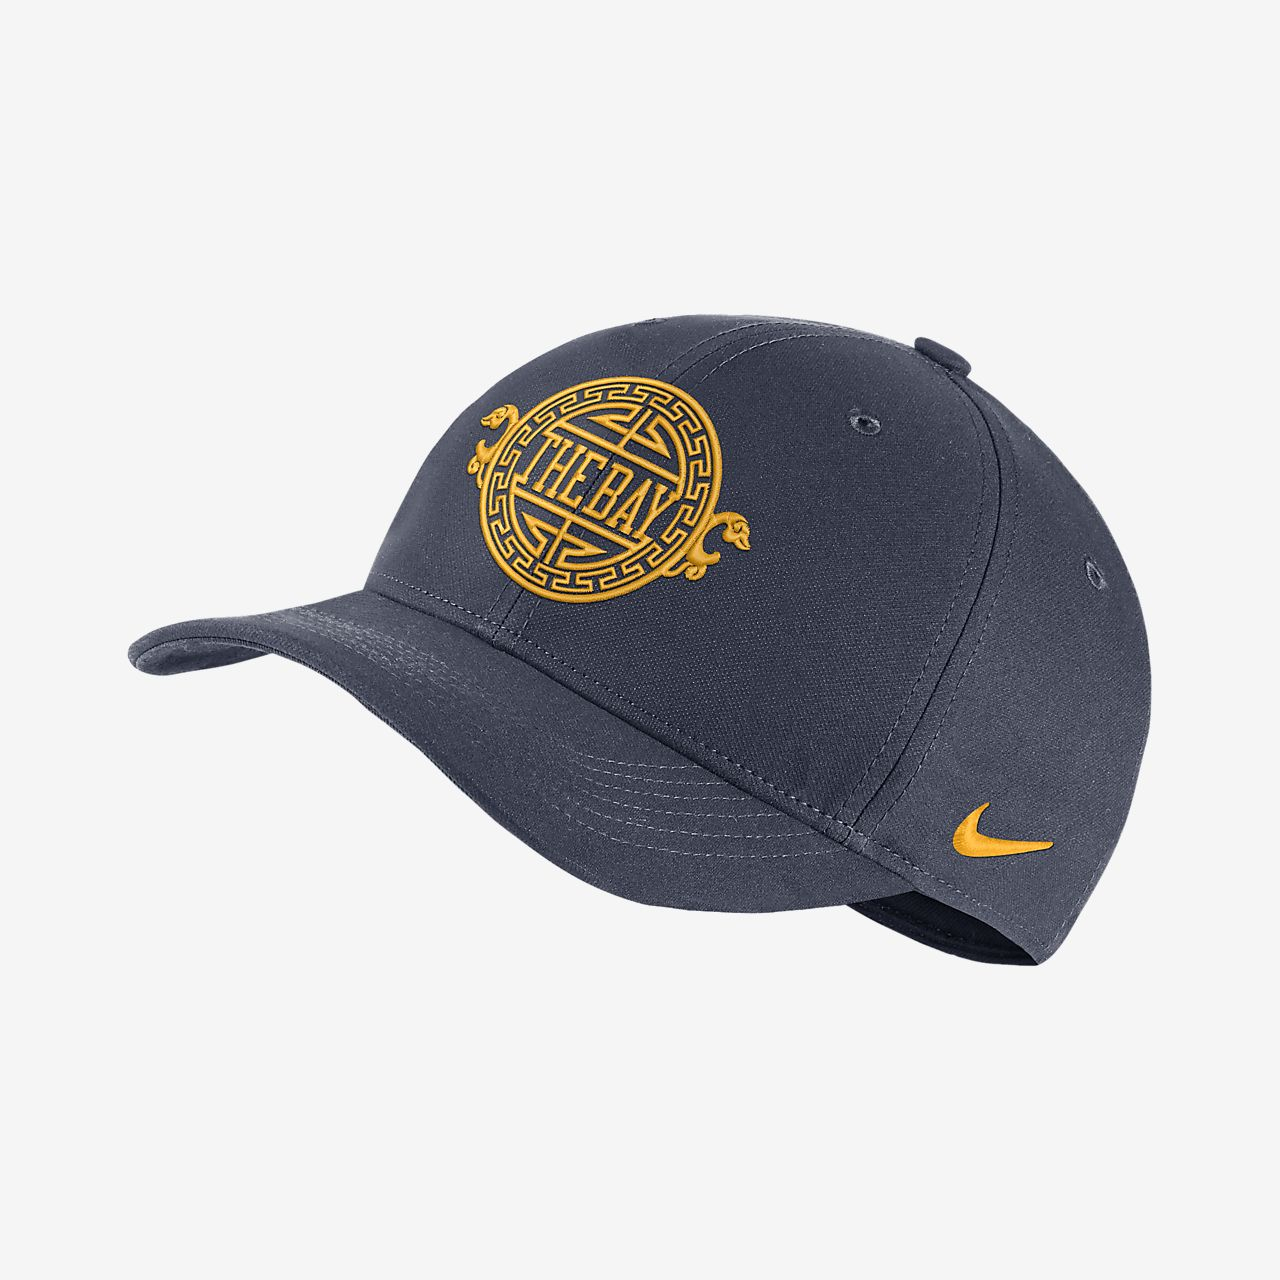 Golden State Warriors City Edition Nike AeroBill Classic99 NBA Hat